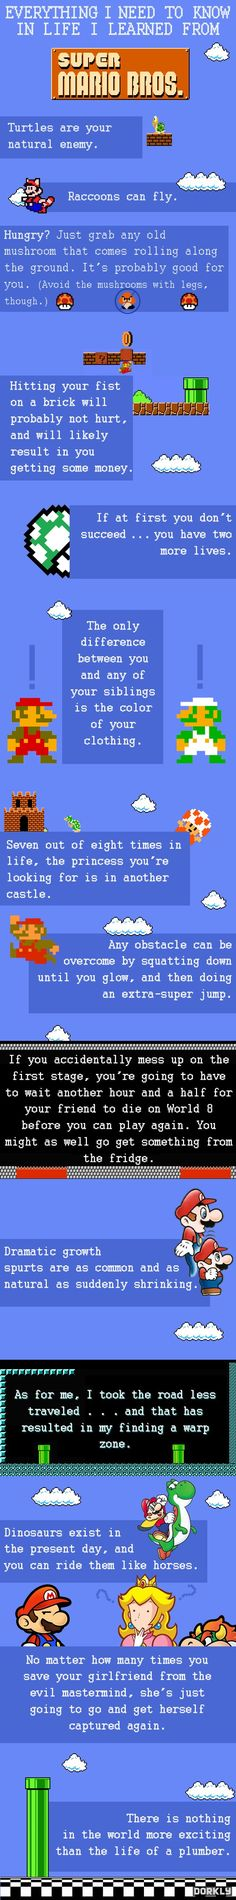 Life lessons learned from Super Mario Bros. [pic]